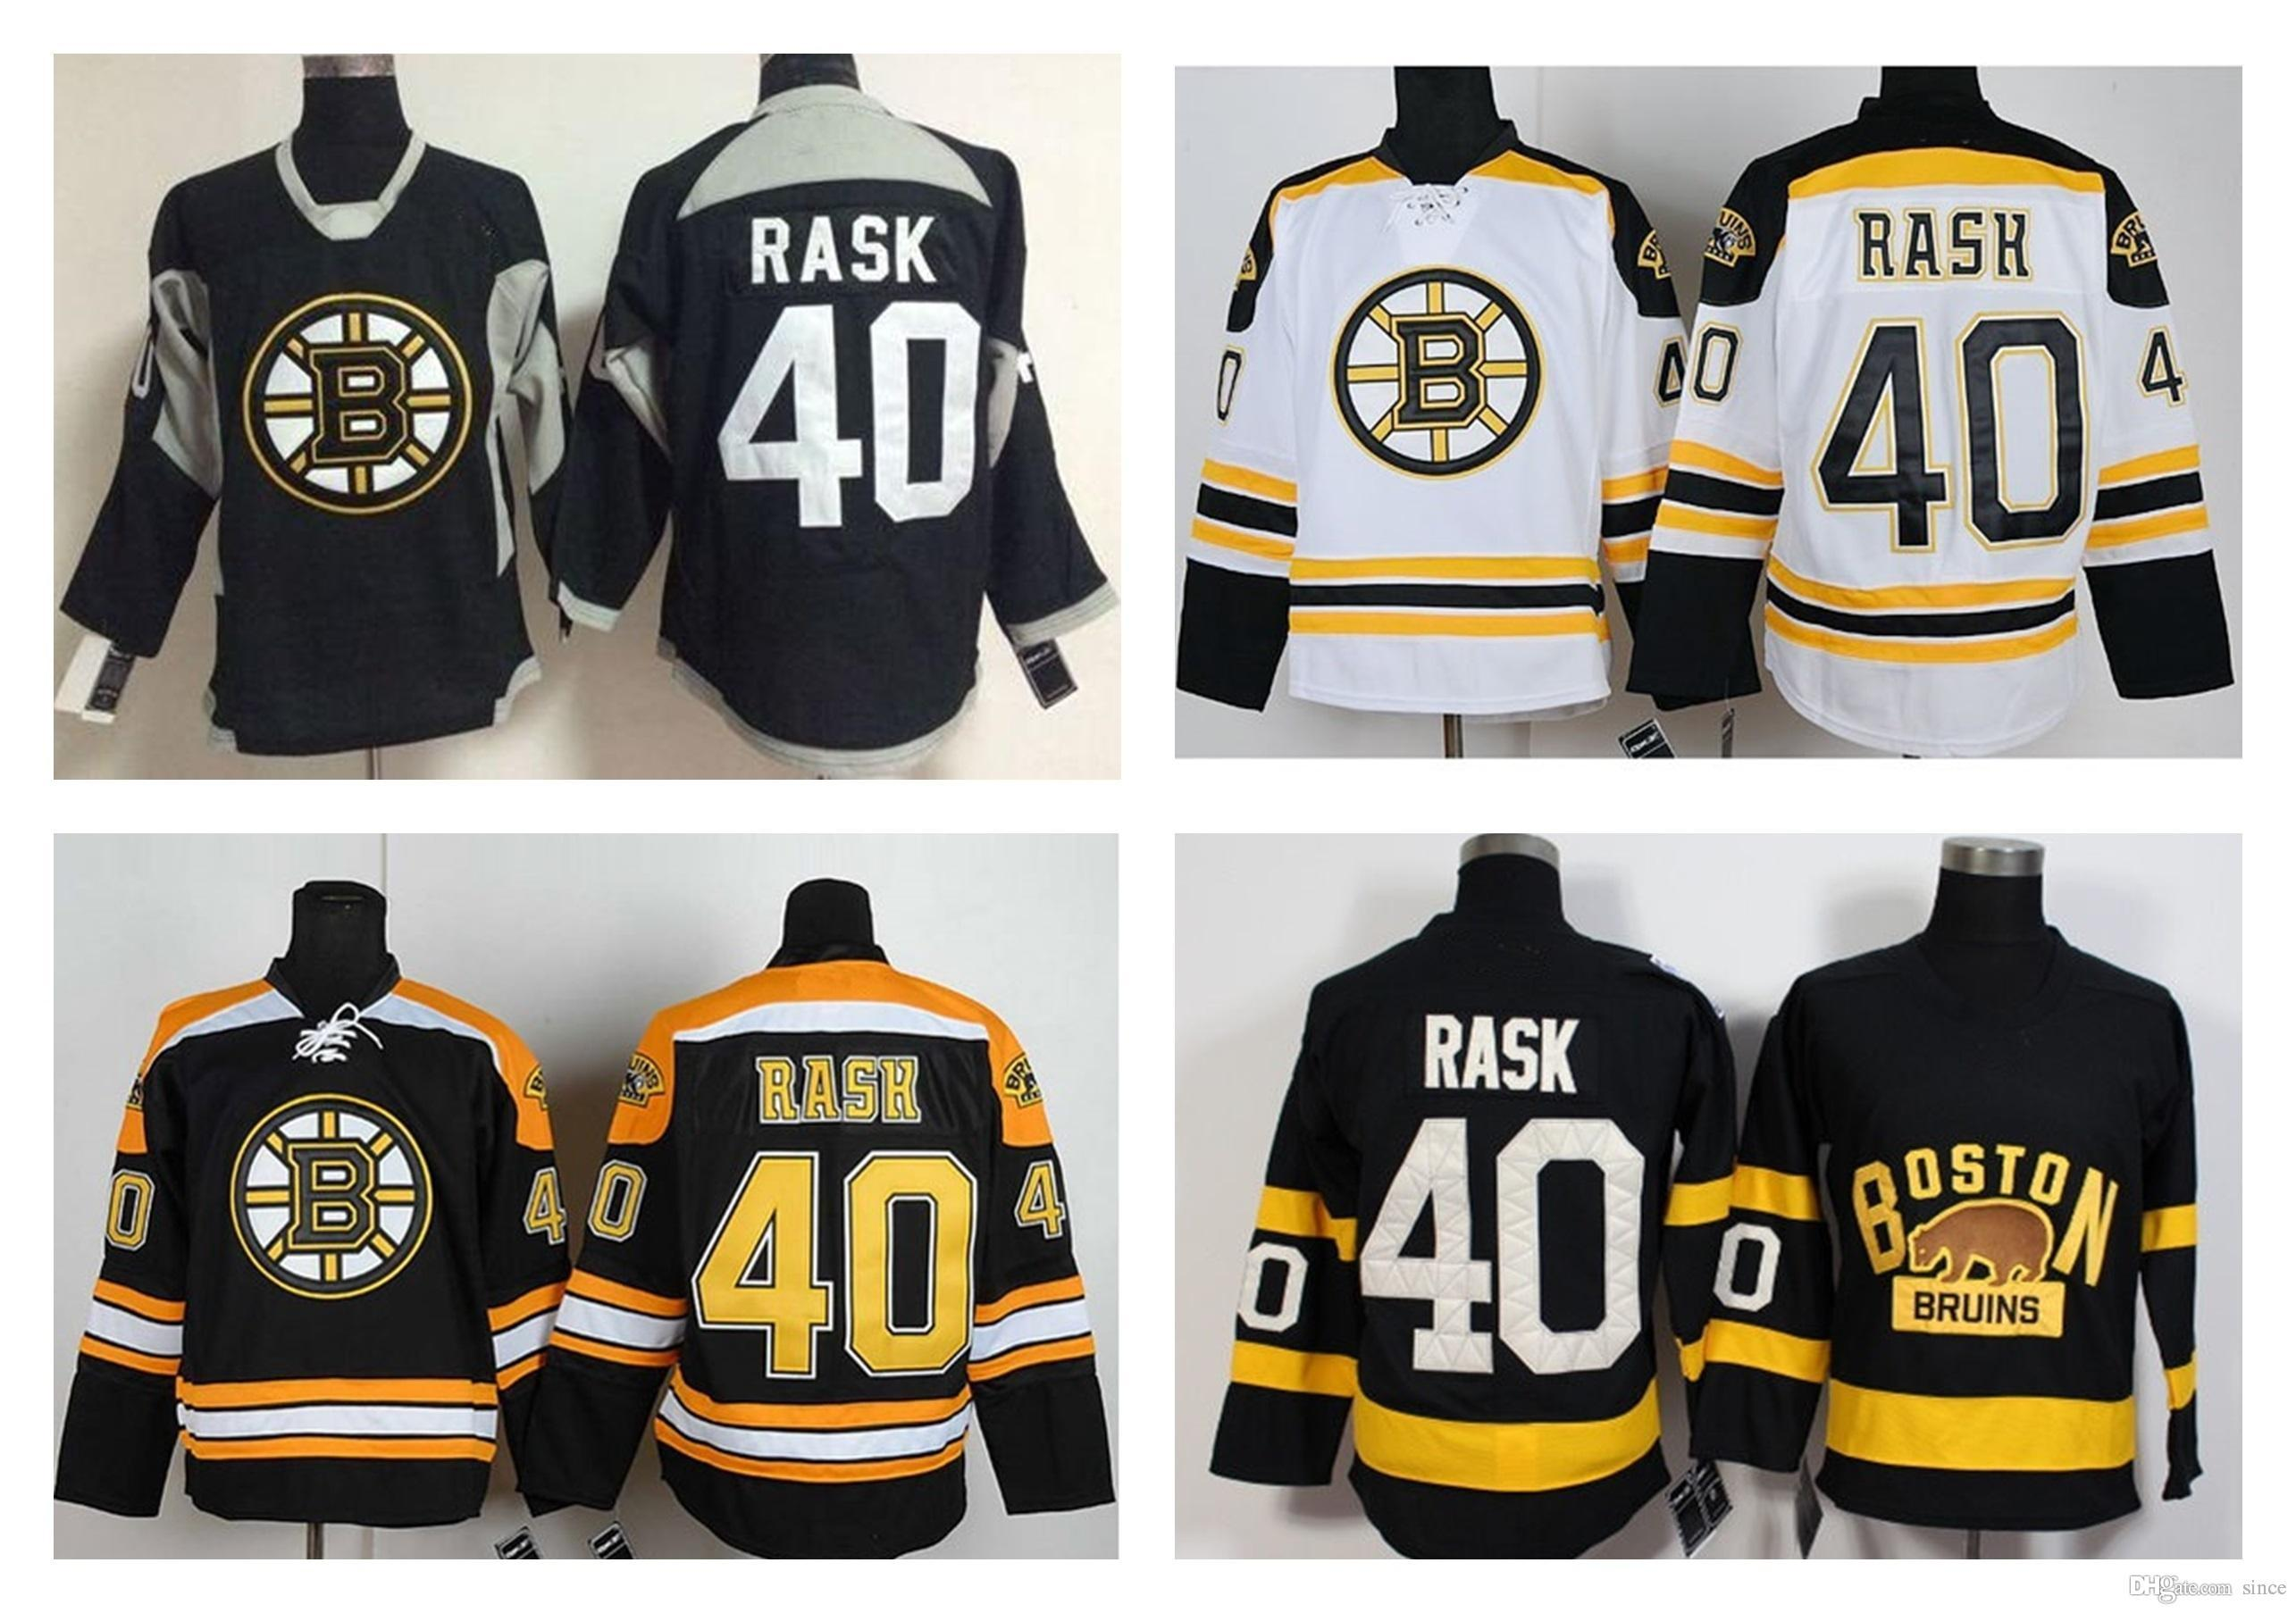 c8ada8edd05 2019 Mens 40 Tuukka Rask 2016 New Cheap Boston Bruins Jerseys Authentic  Swearsport T Shirt White Black Best Quality Embroidered Hockey Jerseys From  Since